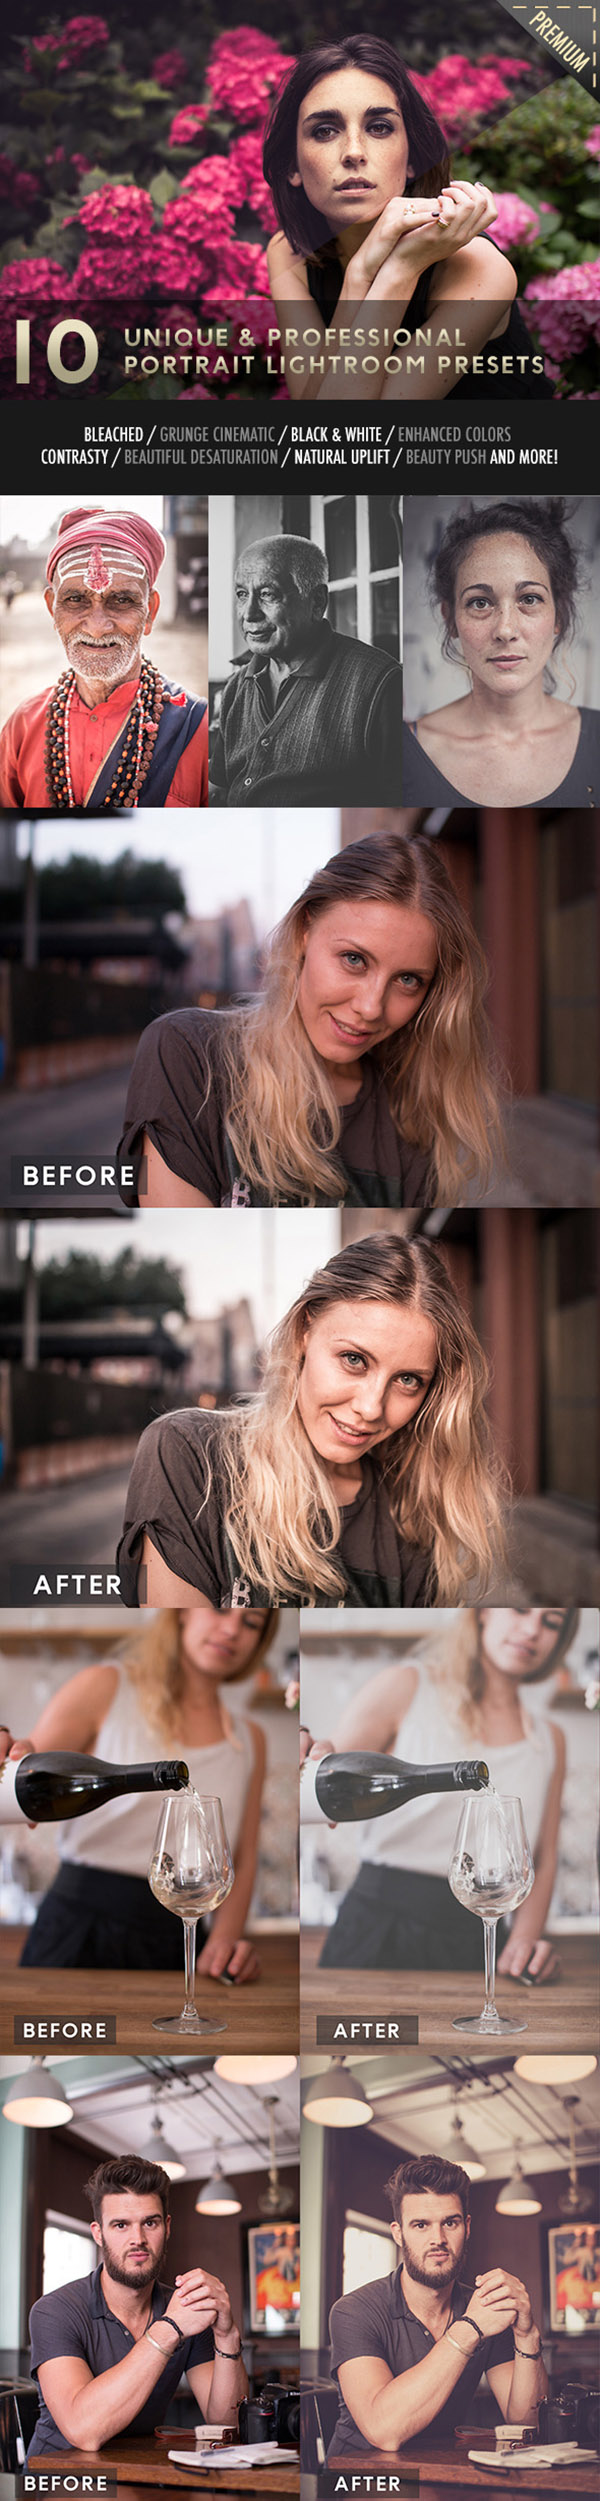 03 10 Portrait Photography Lightroom Presets